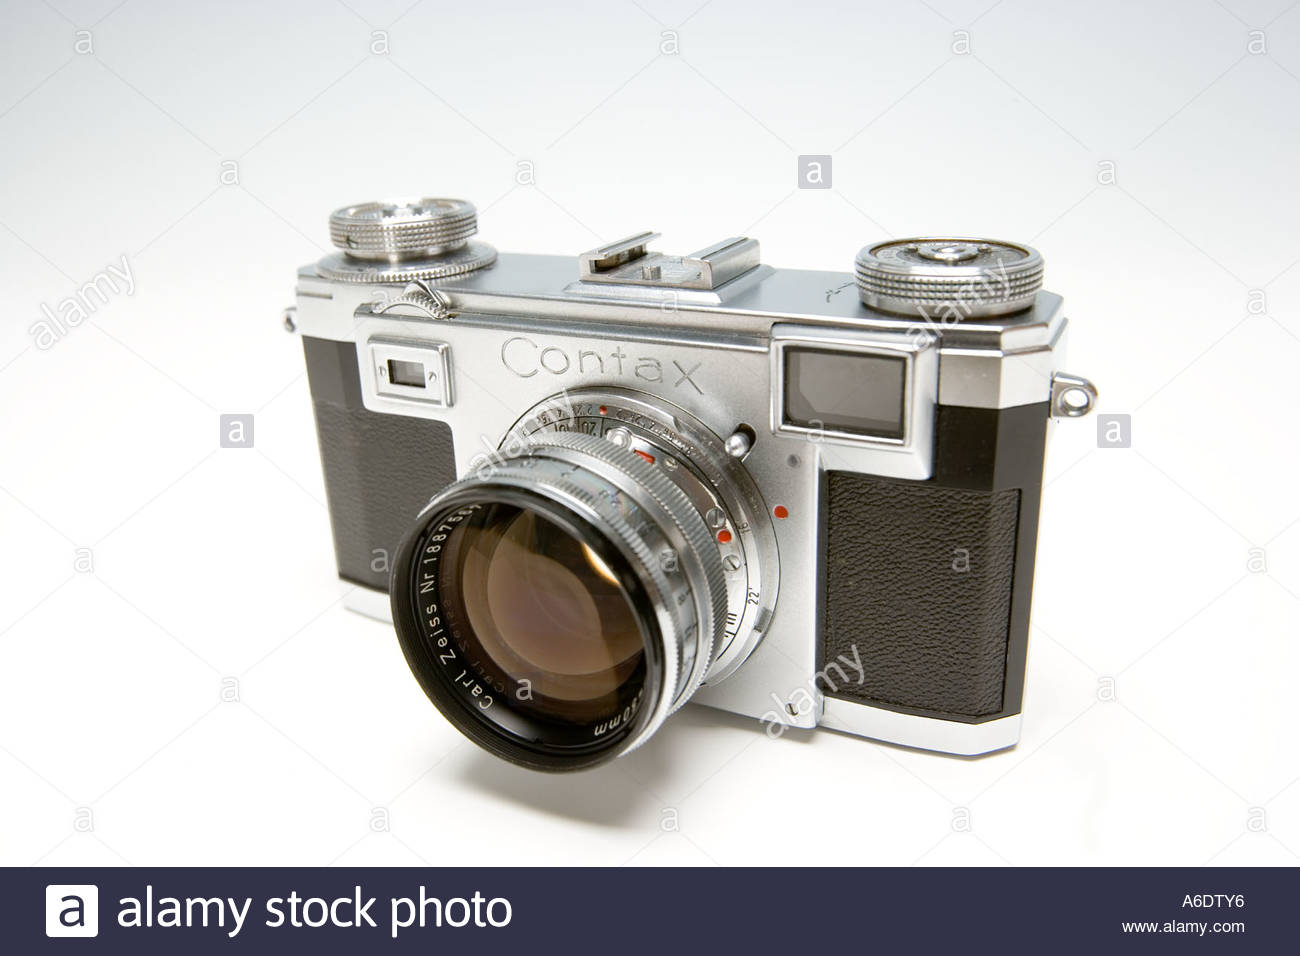 Contax II A Rangefinder Camera with Carl Zeiss Sonnar 50mm